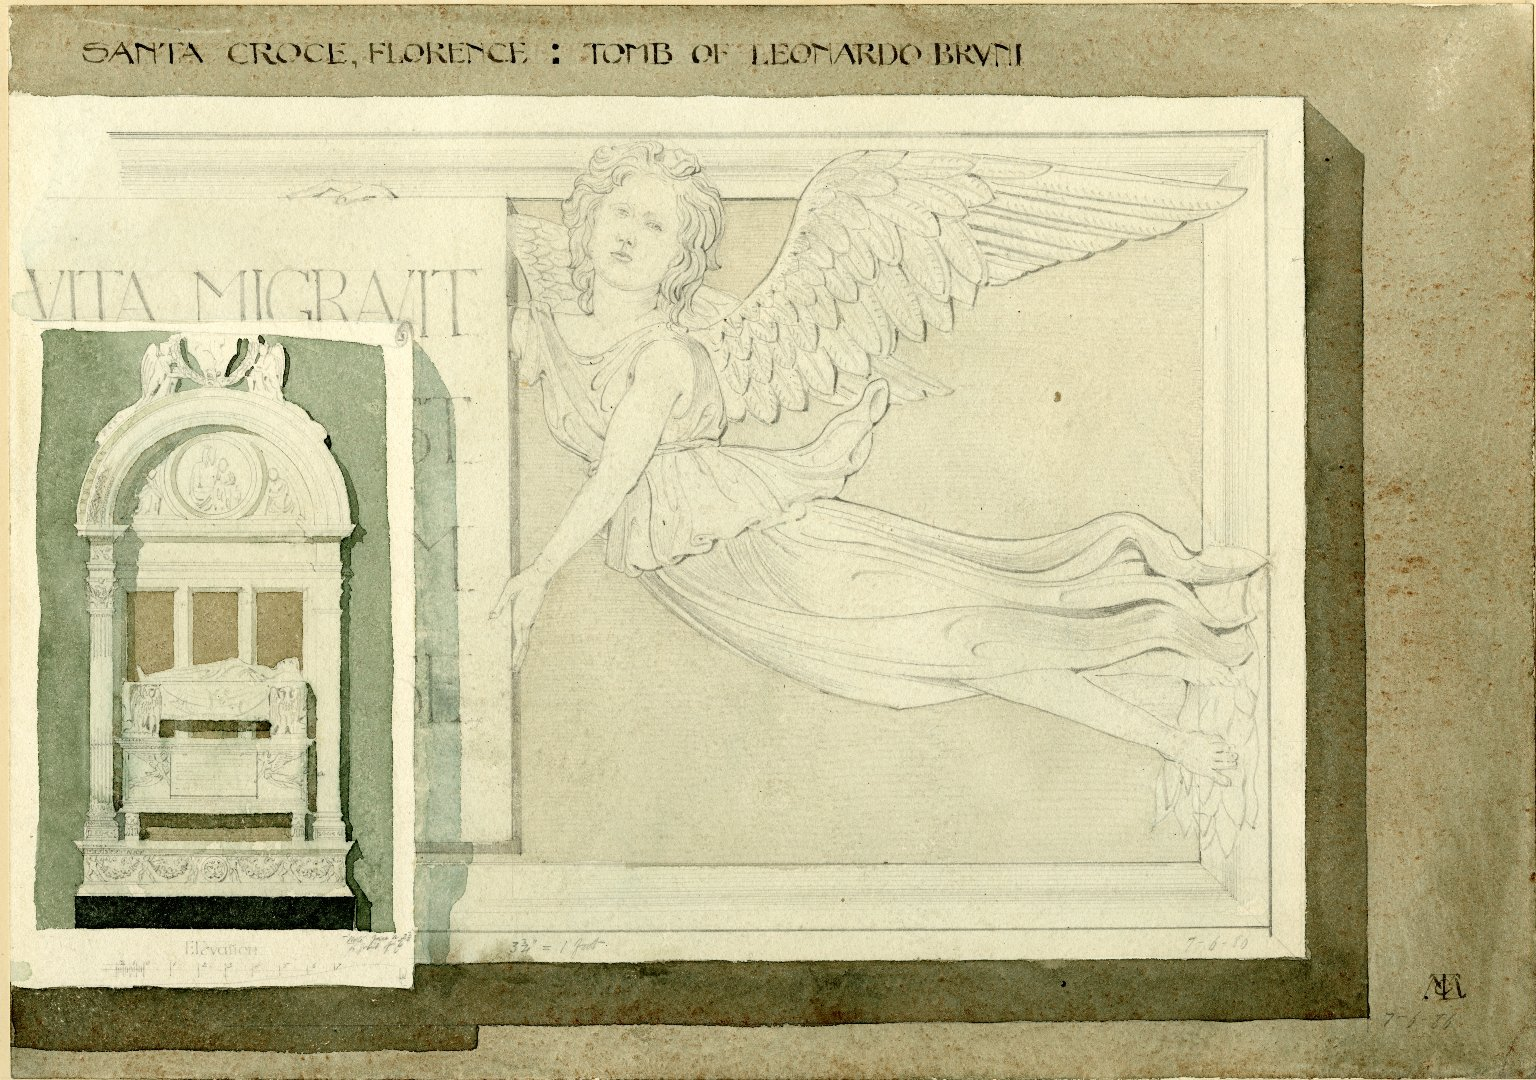 Tomb of Leonardo Bruni, Santa Croce, Florence